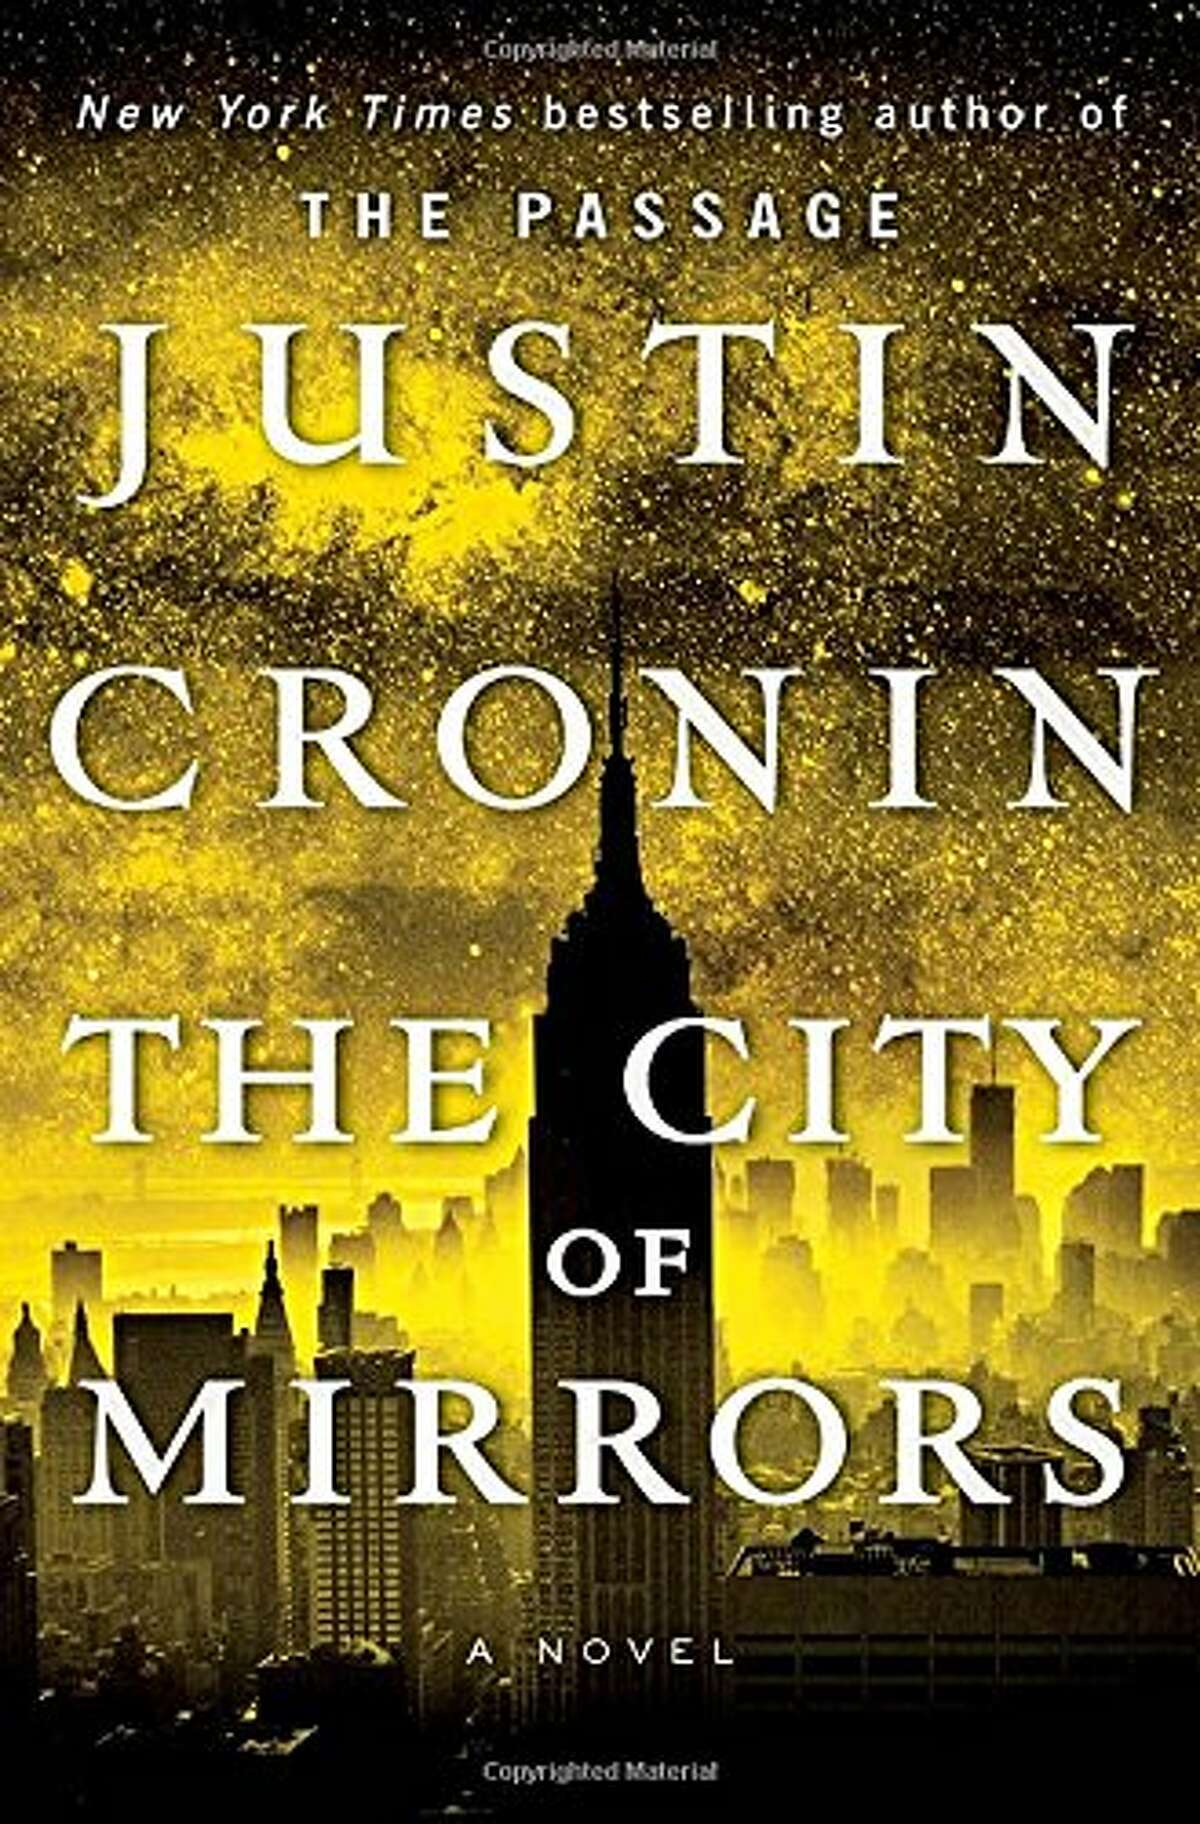 The City of Mirrors By Justin Cronin Ballantine Books, 624 pp., $28 In the final book of Justin Cronin's blockbuster